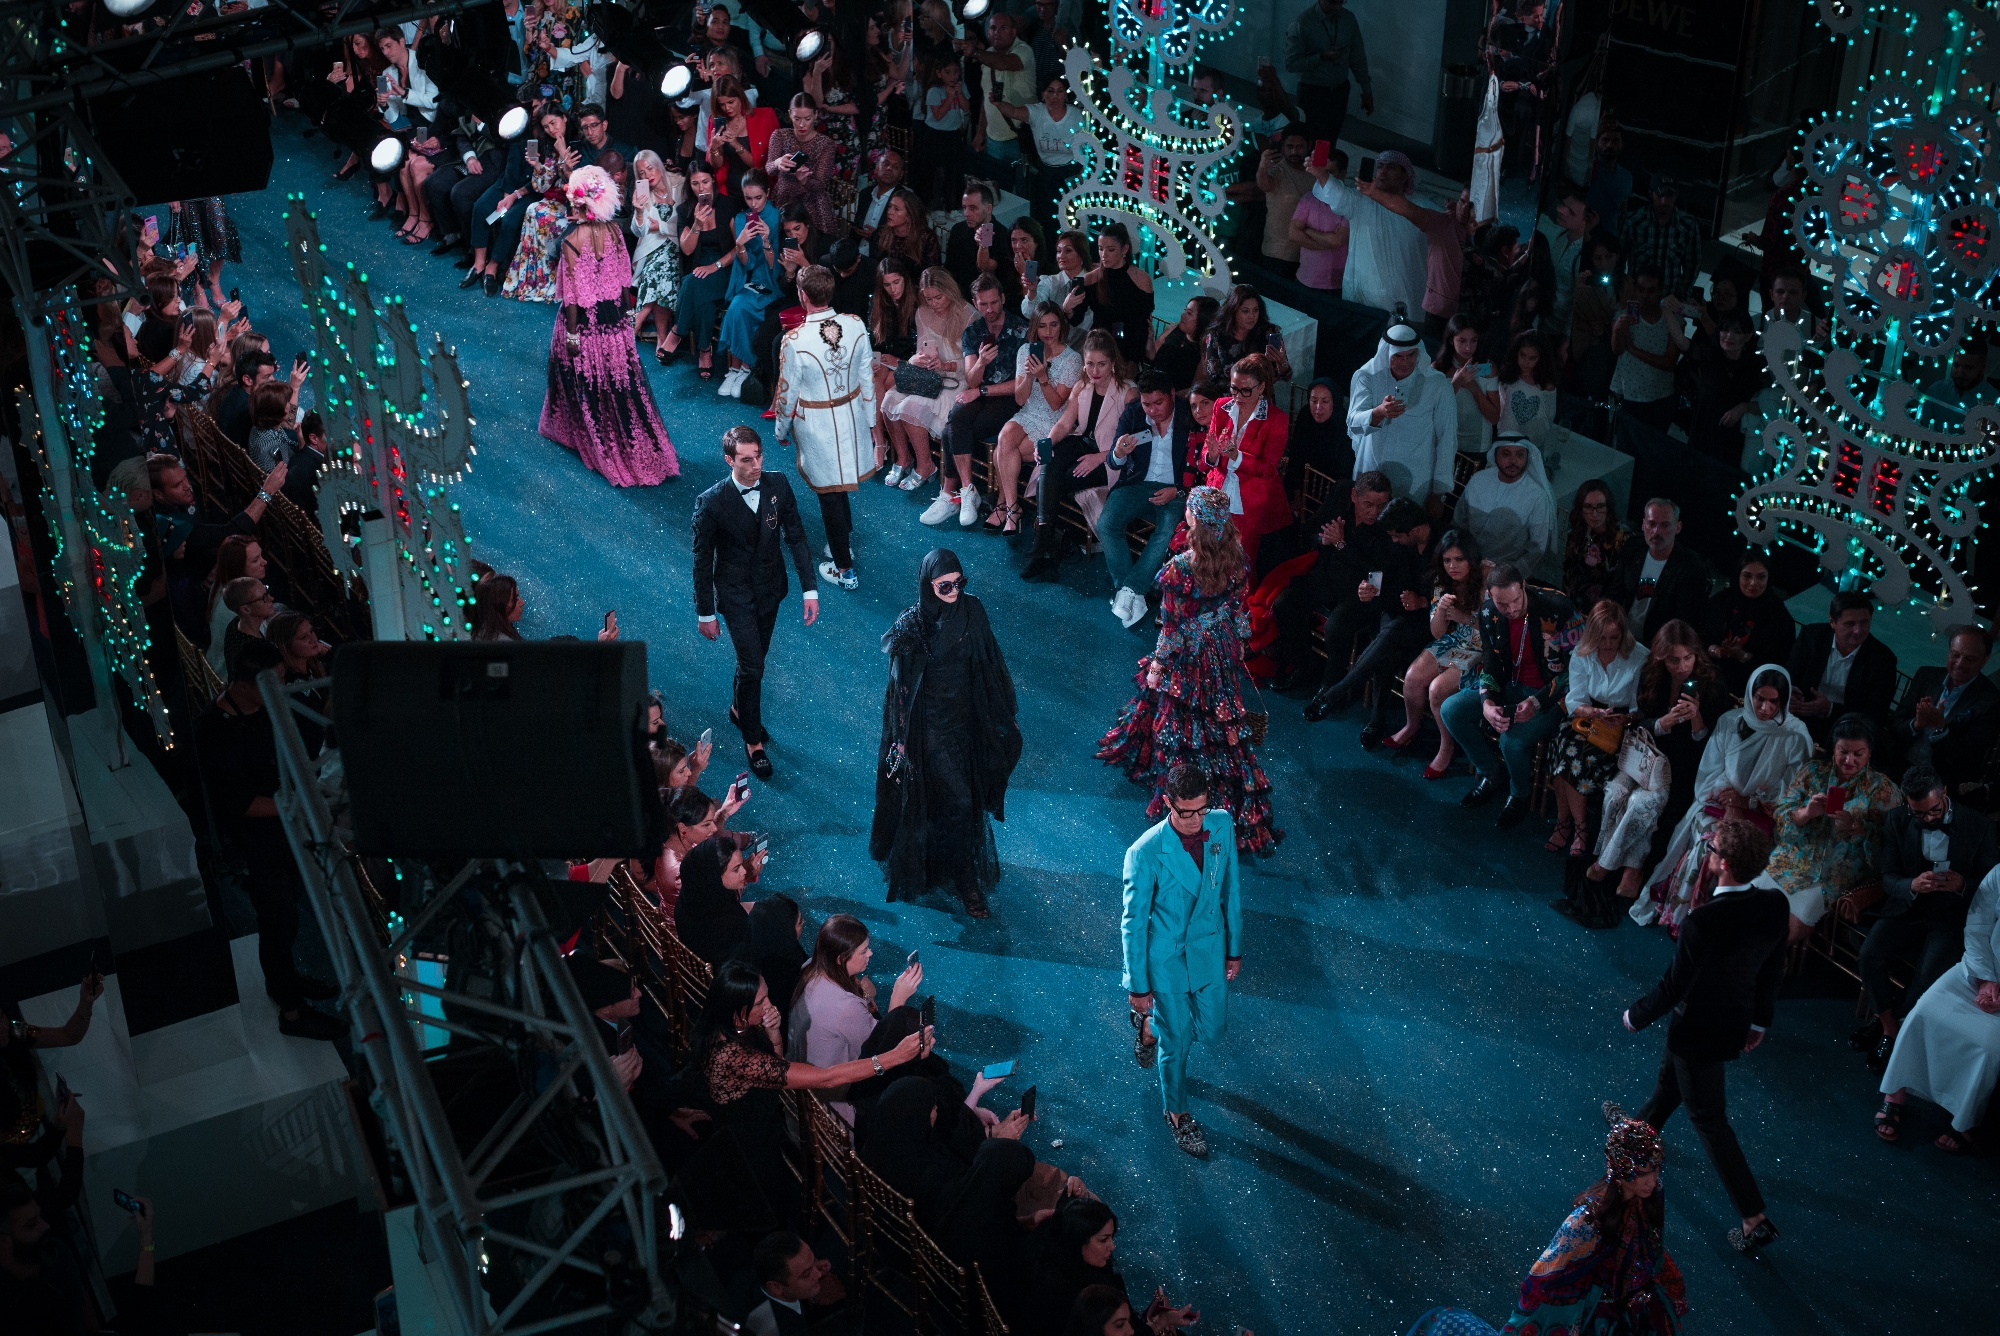 MakersValley Blog | What Fashion Week and Trade Shows Will Look Like This Fall, and in the Future